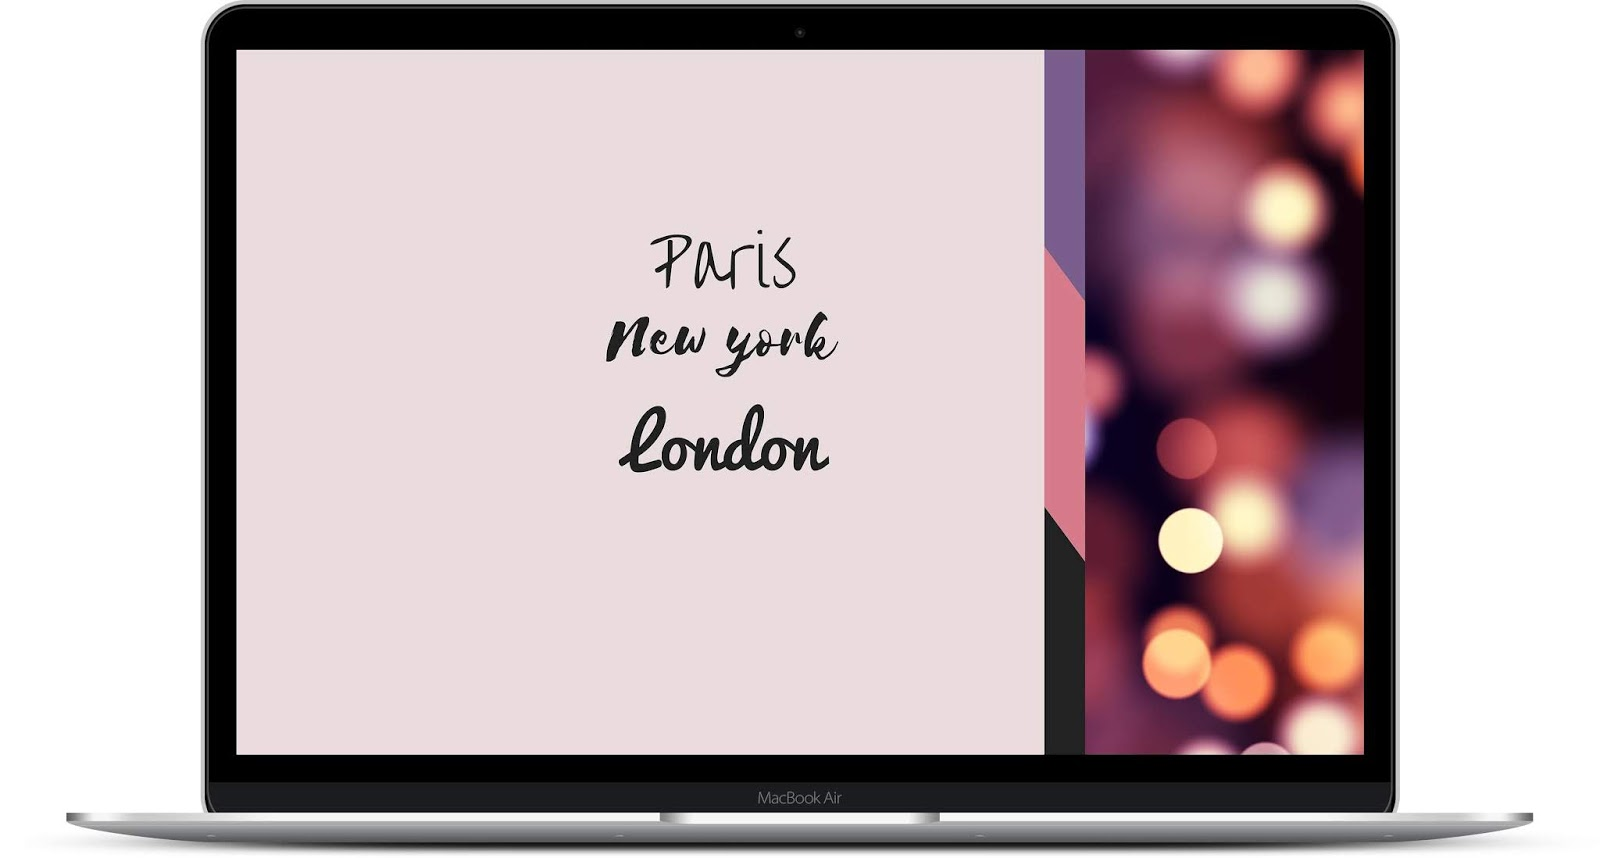 Paris New york London preview Jenmag